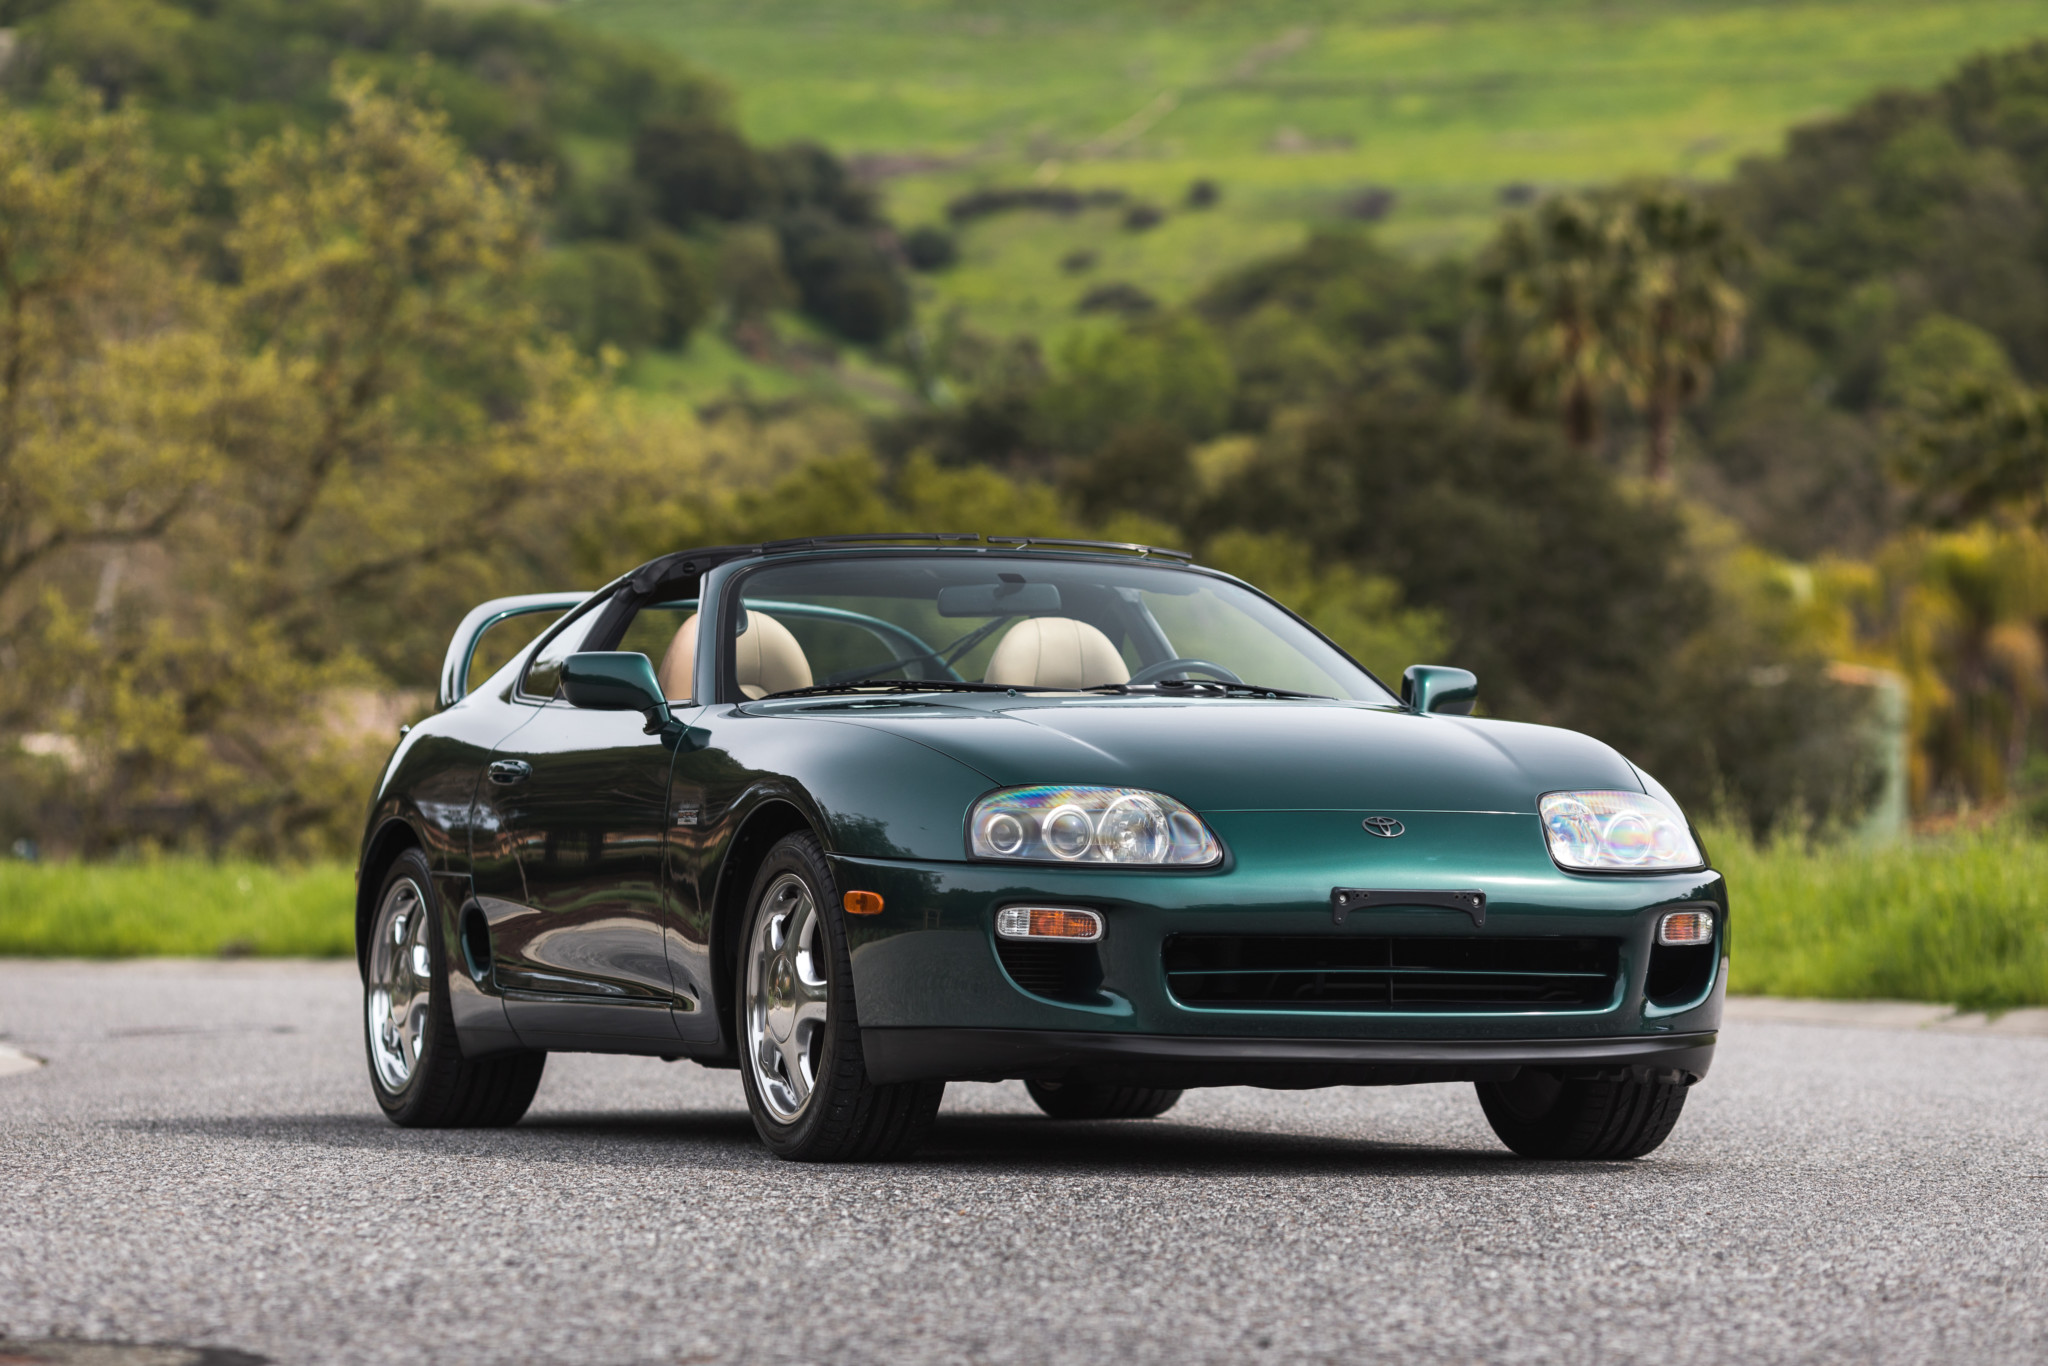 Toyota-Supra-Twin-Turbo-1997-sale-1